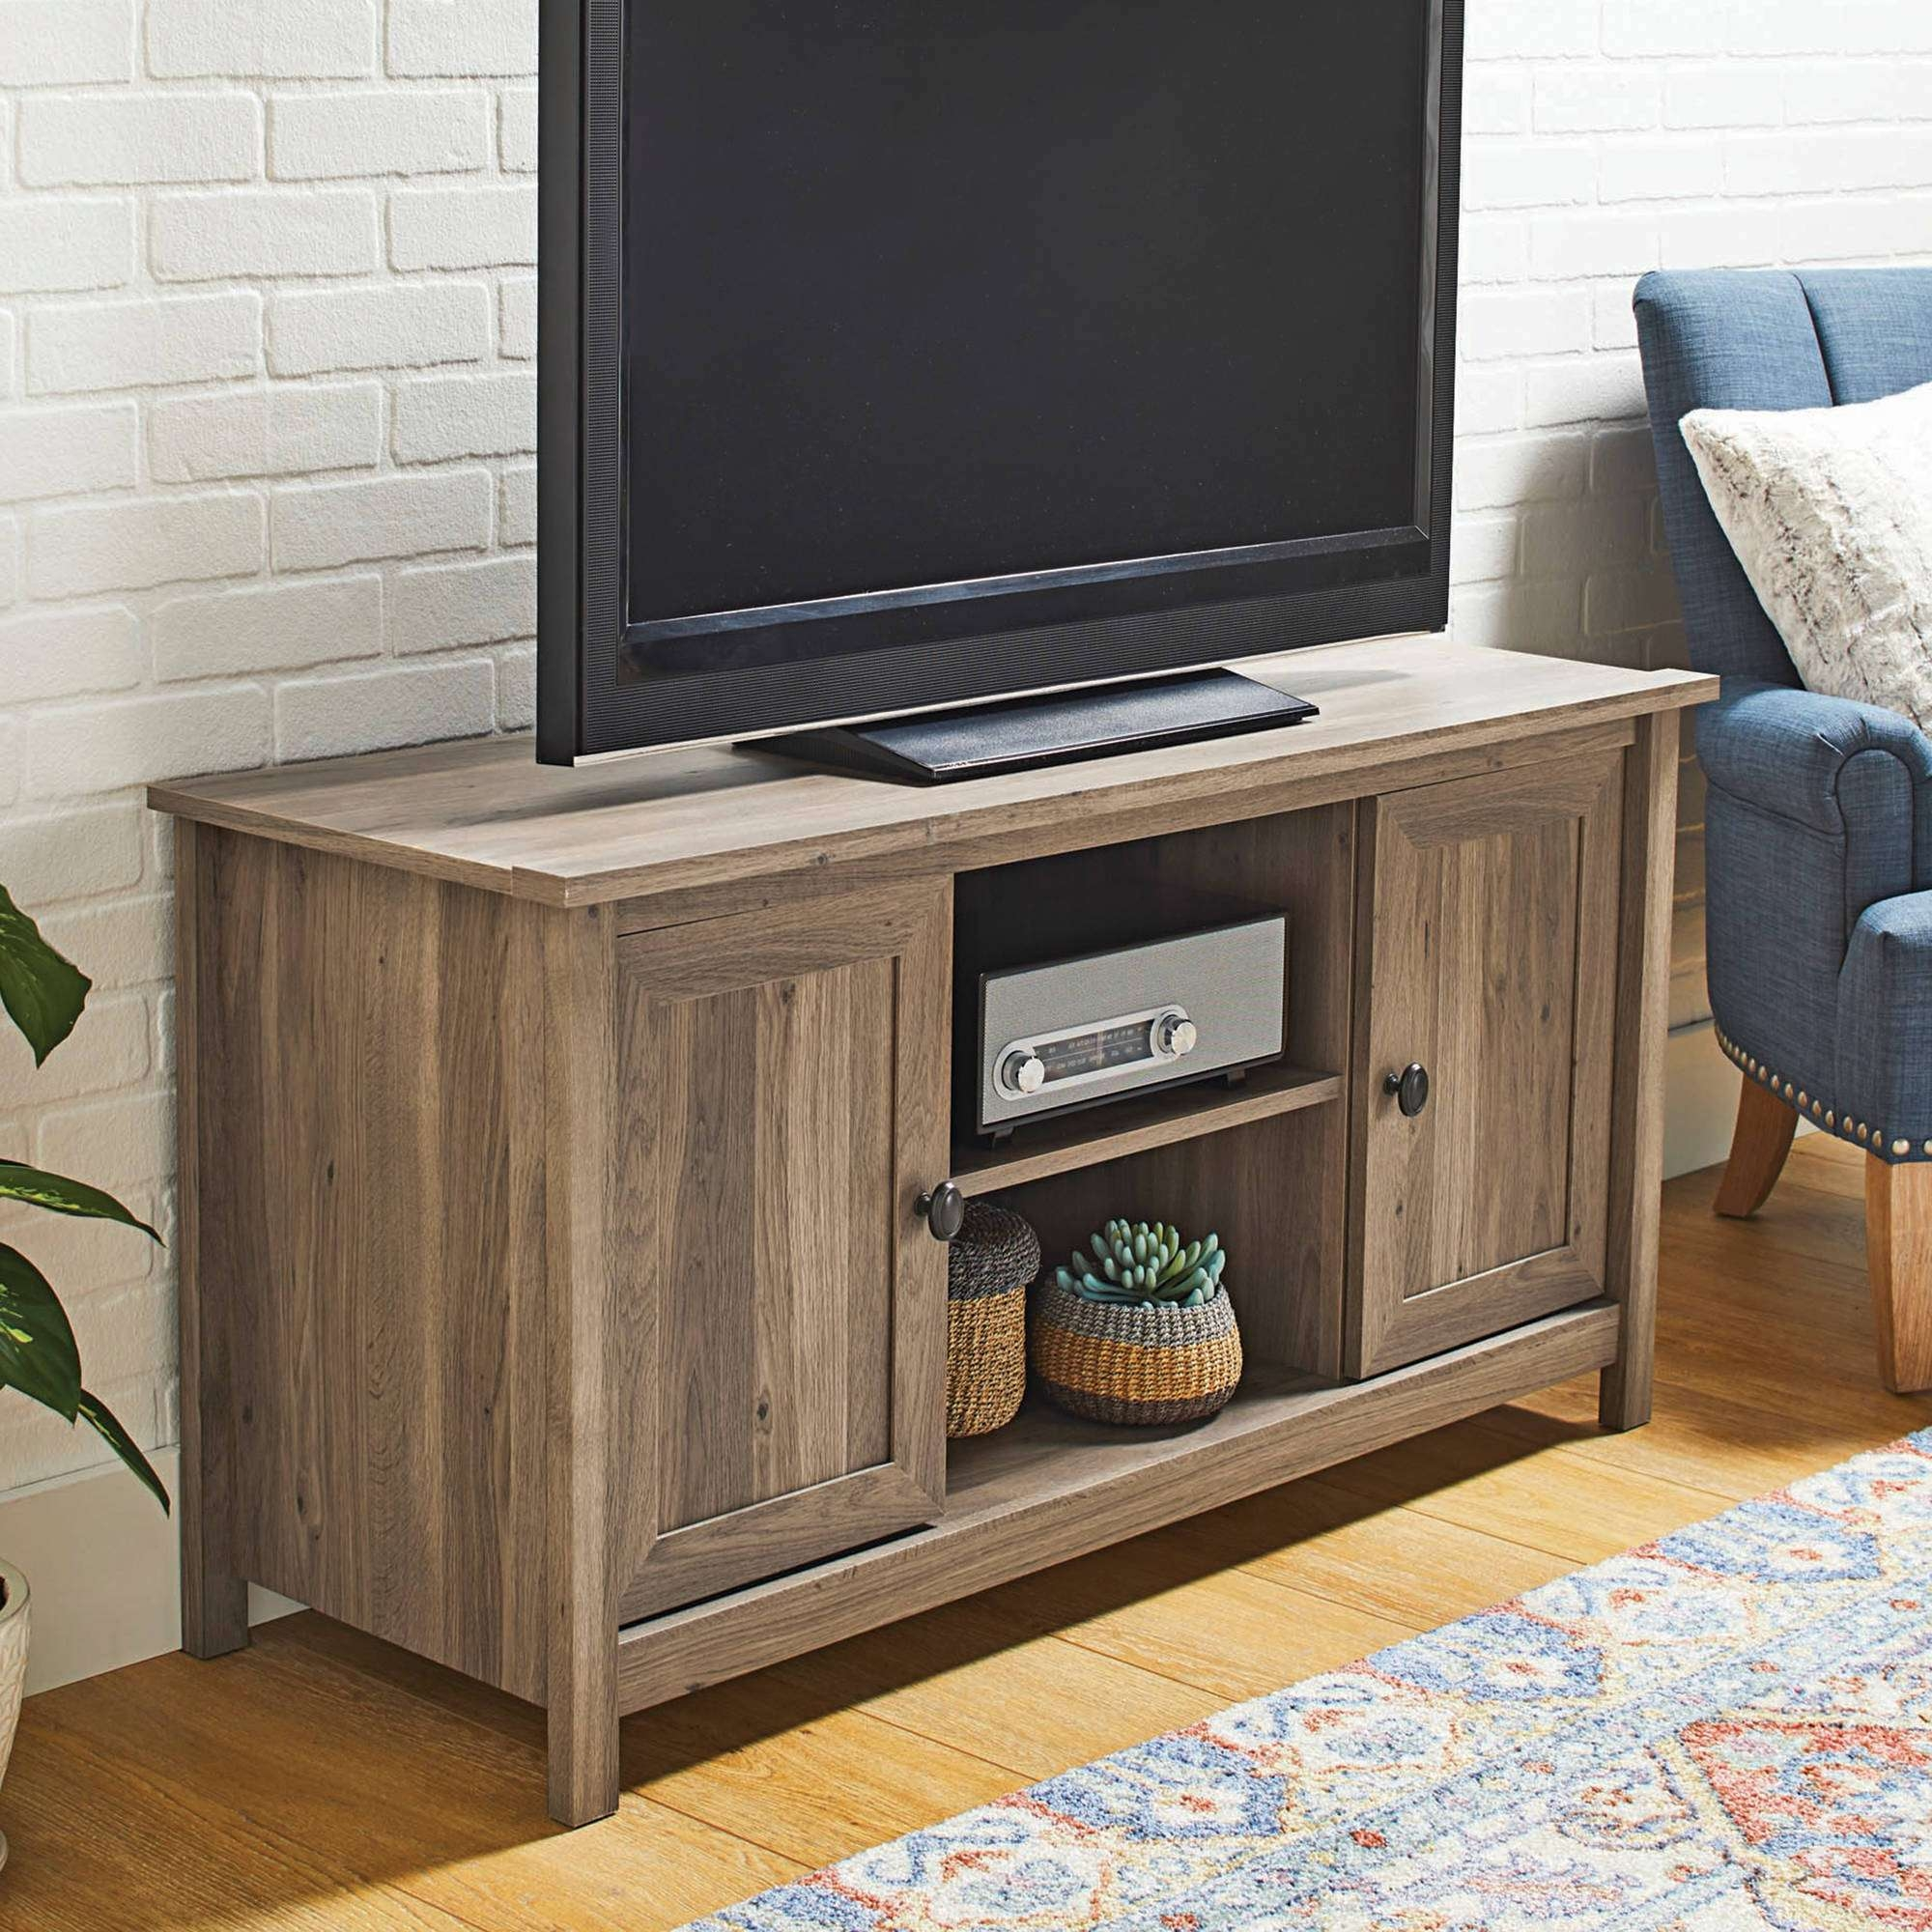 Tv : Maple Tv Stands Glamorous Solid Maple Tv Stands' Noteworthy In Maple Wood Tv Stands (View 11 of 15)